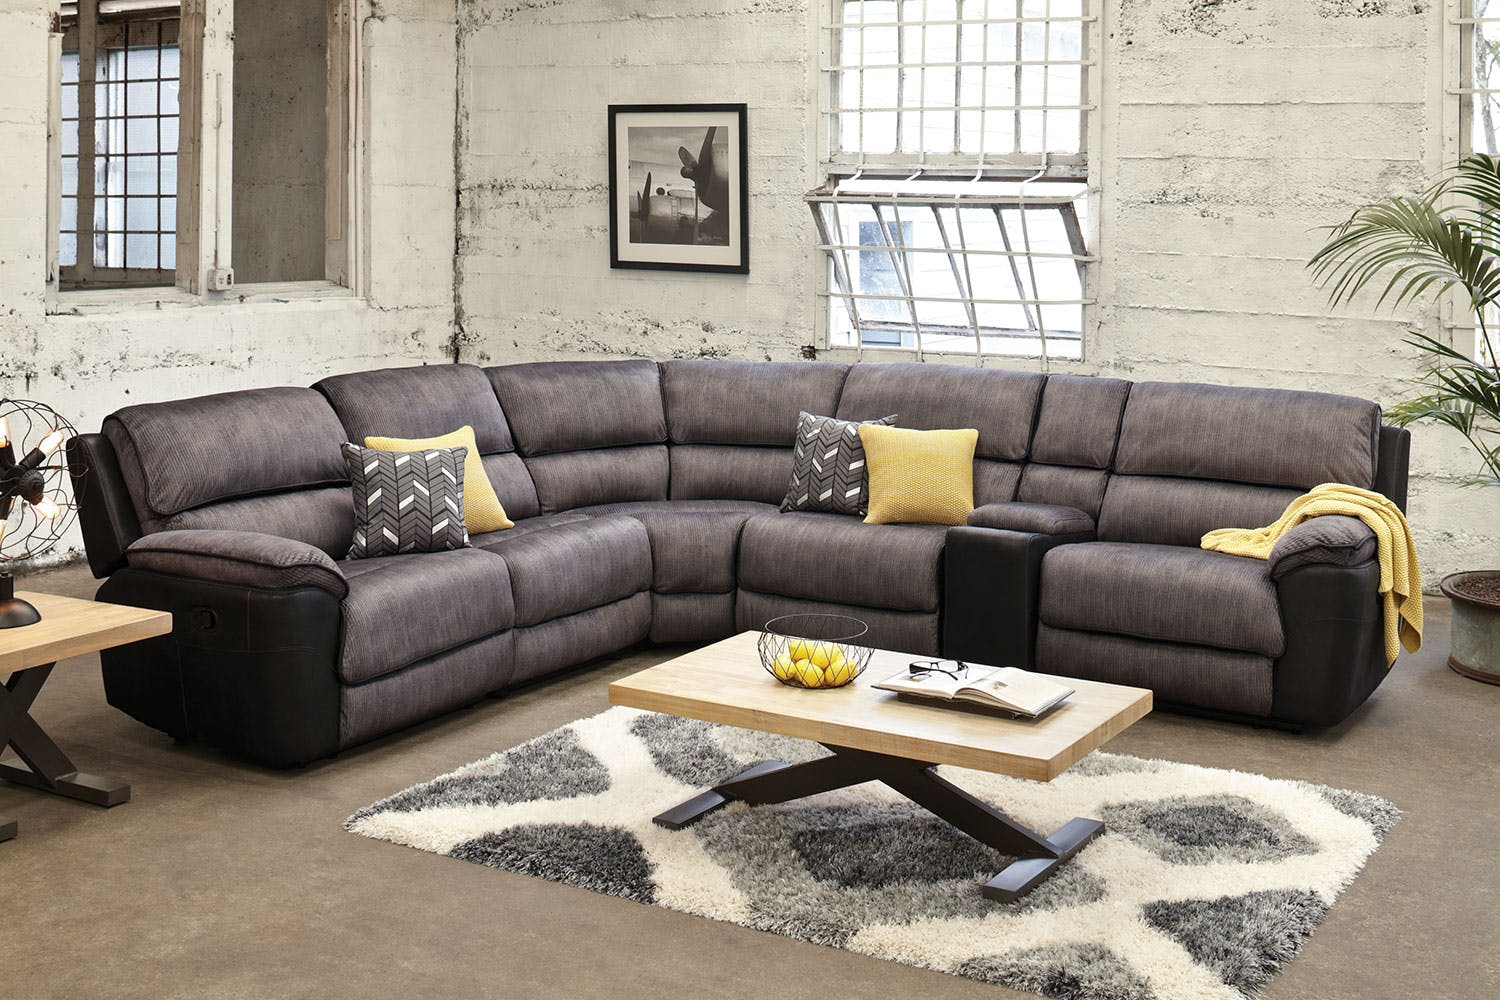 Lachlan 5 Seater Fabric Corner Lounge Suite By Vivin | Harvey Norman New Zealand